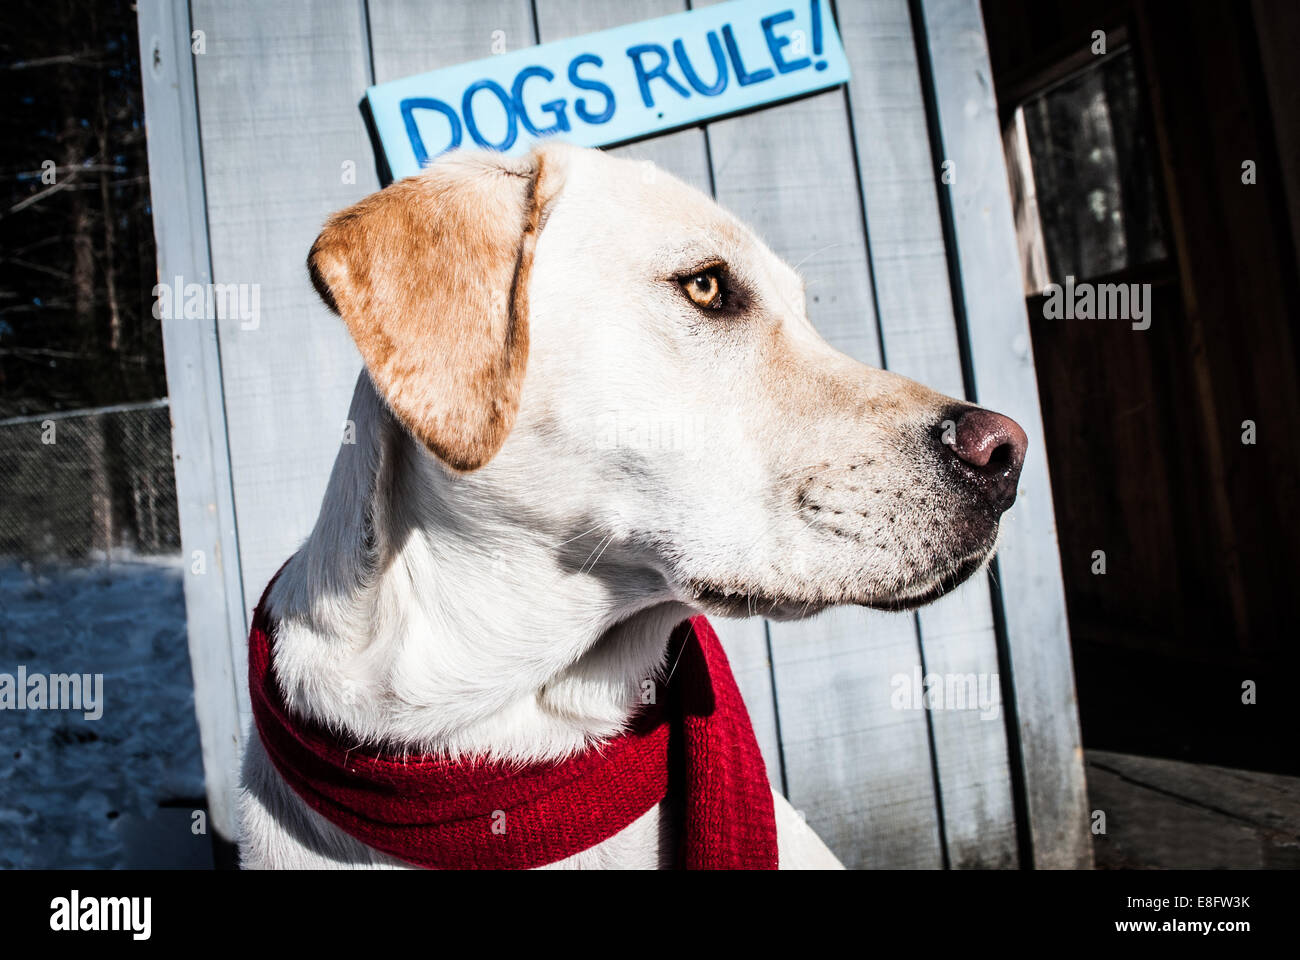 Dog standing in front of Dogs Rule sign - Stock Image